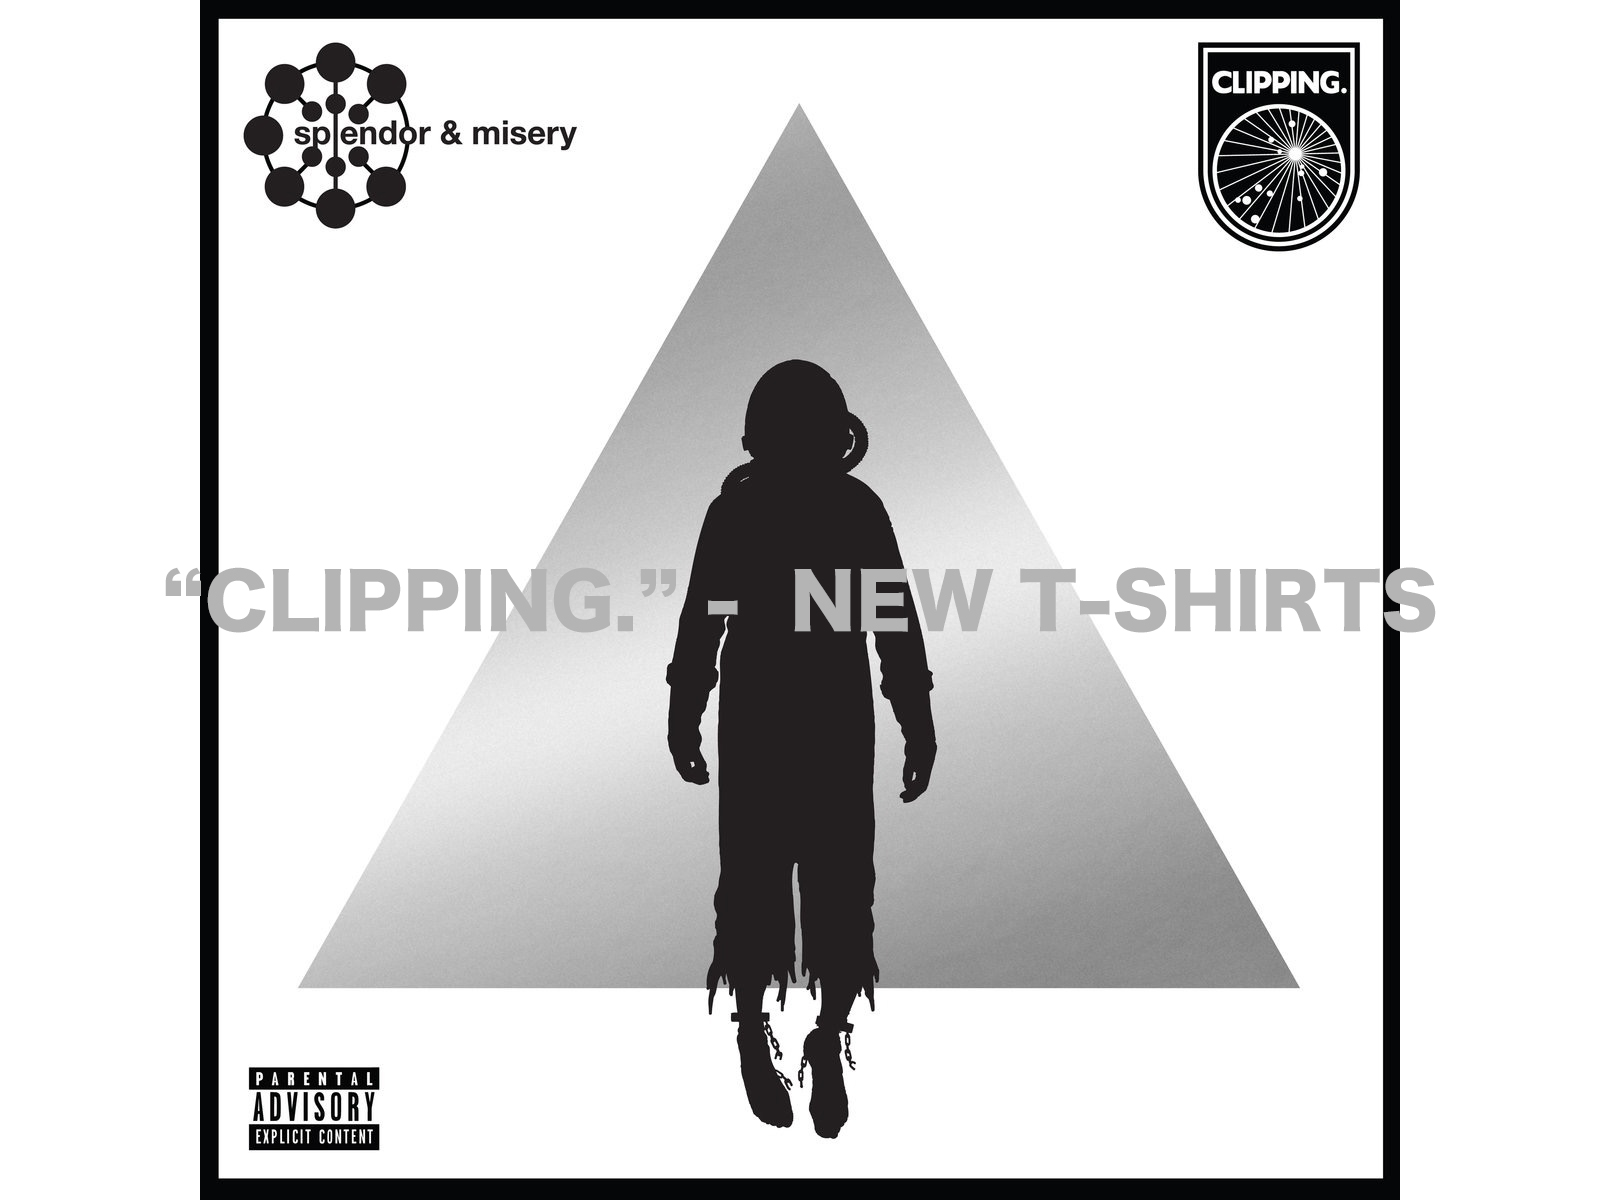 CLIPPING. NEW T-SHIRTS